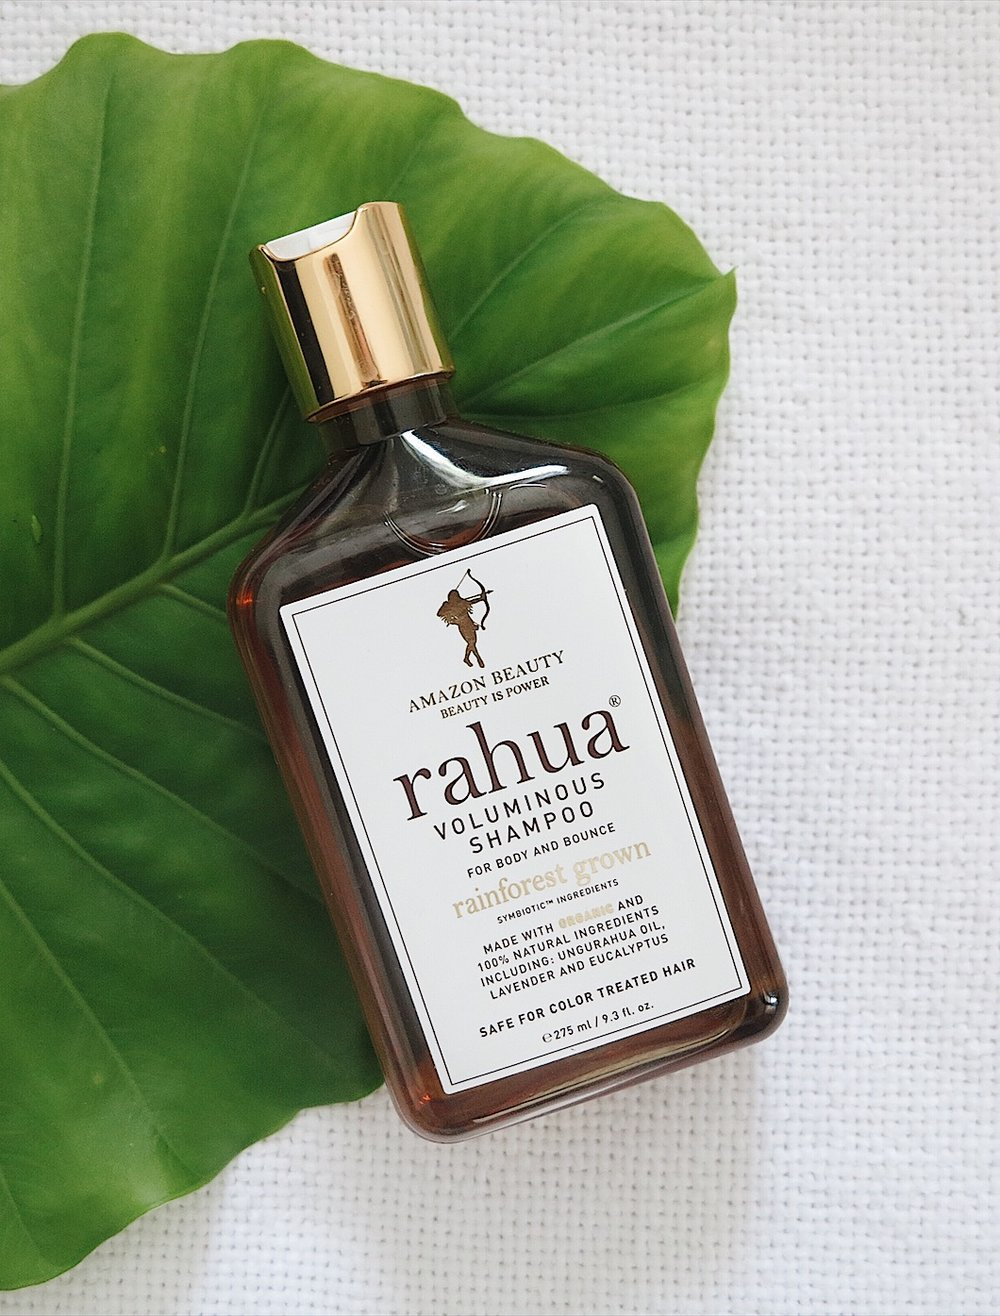 rahua-voluminous-shampoo-review-organic-shampoo